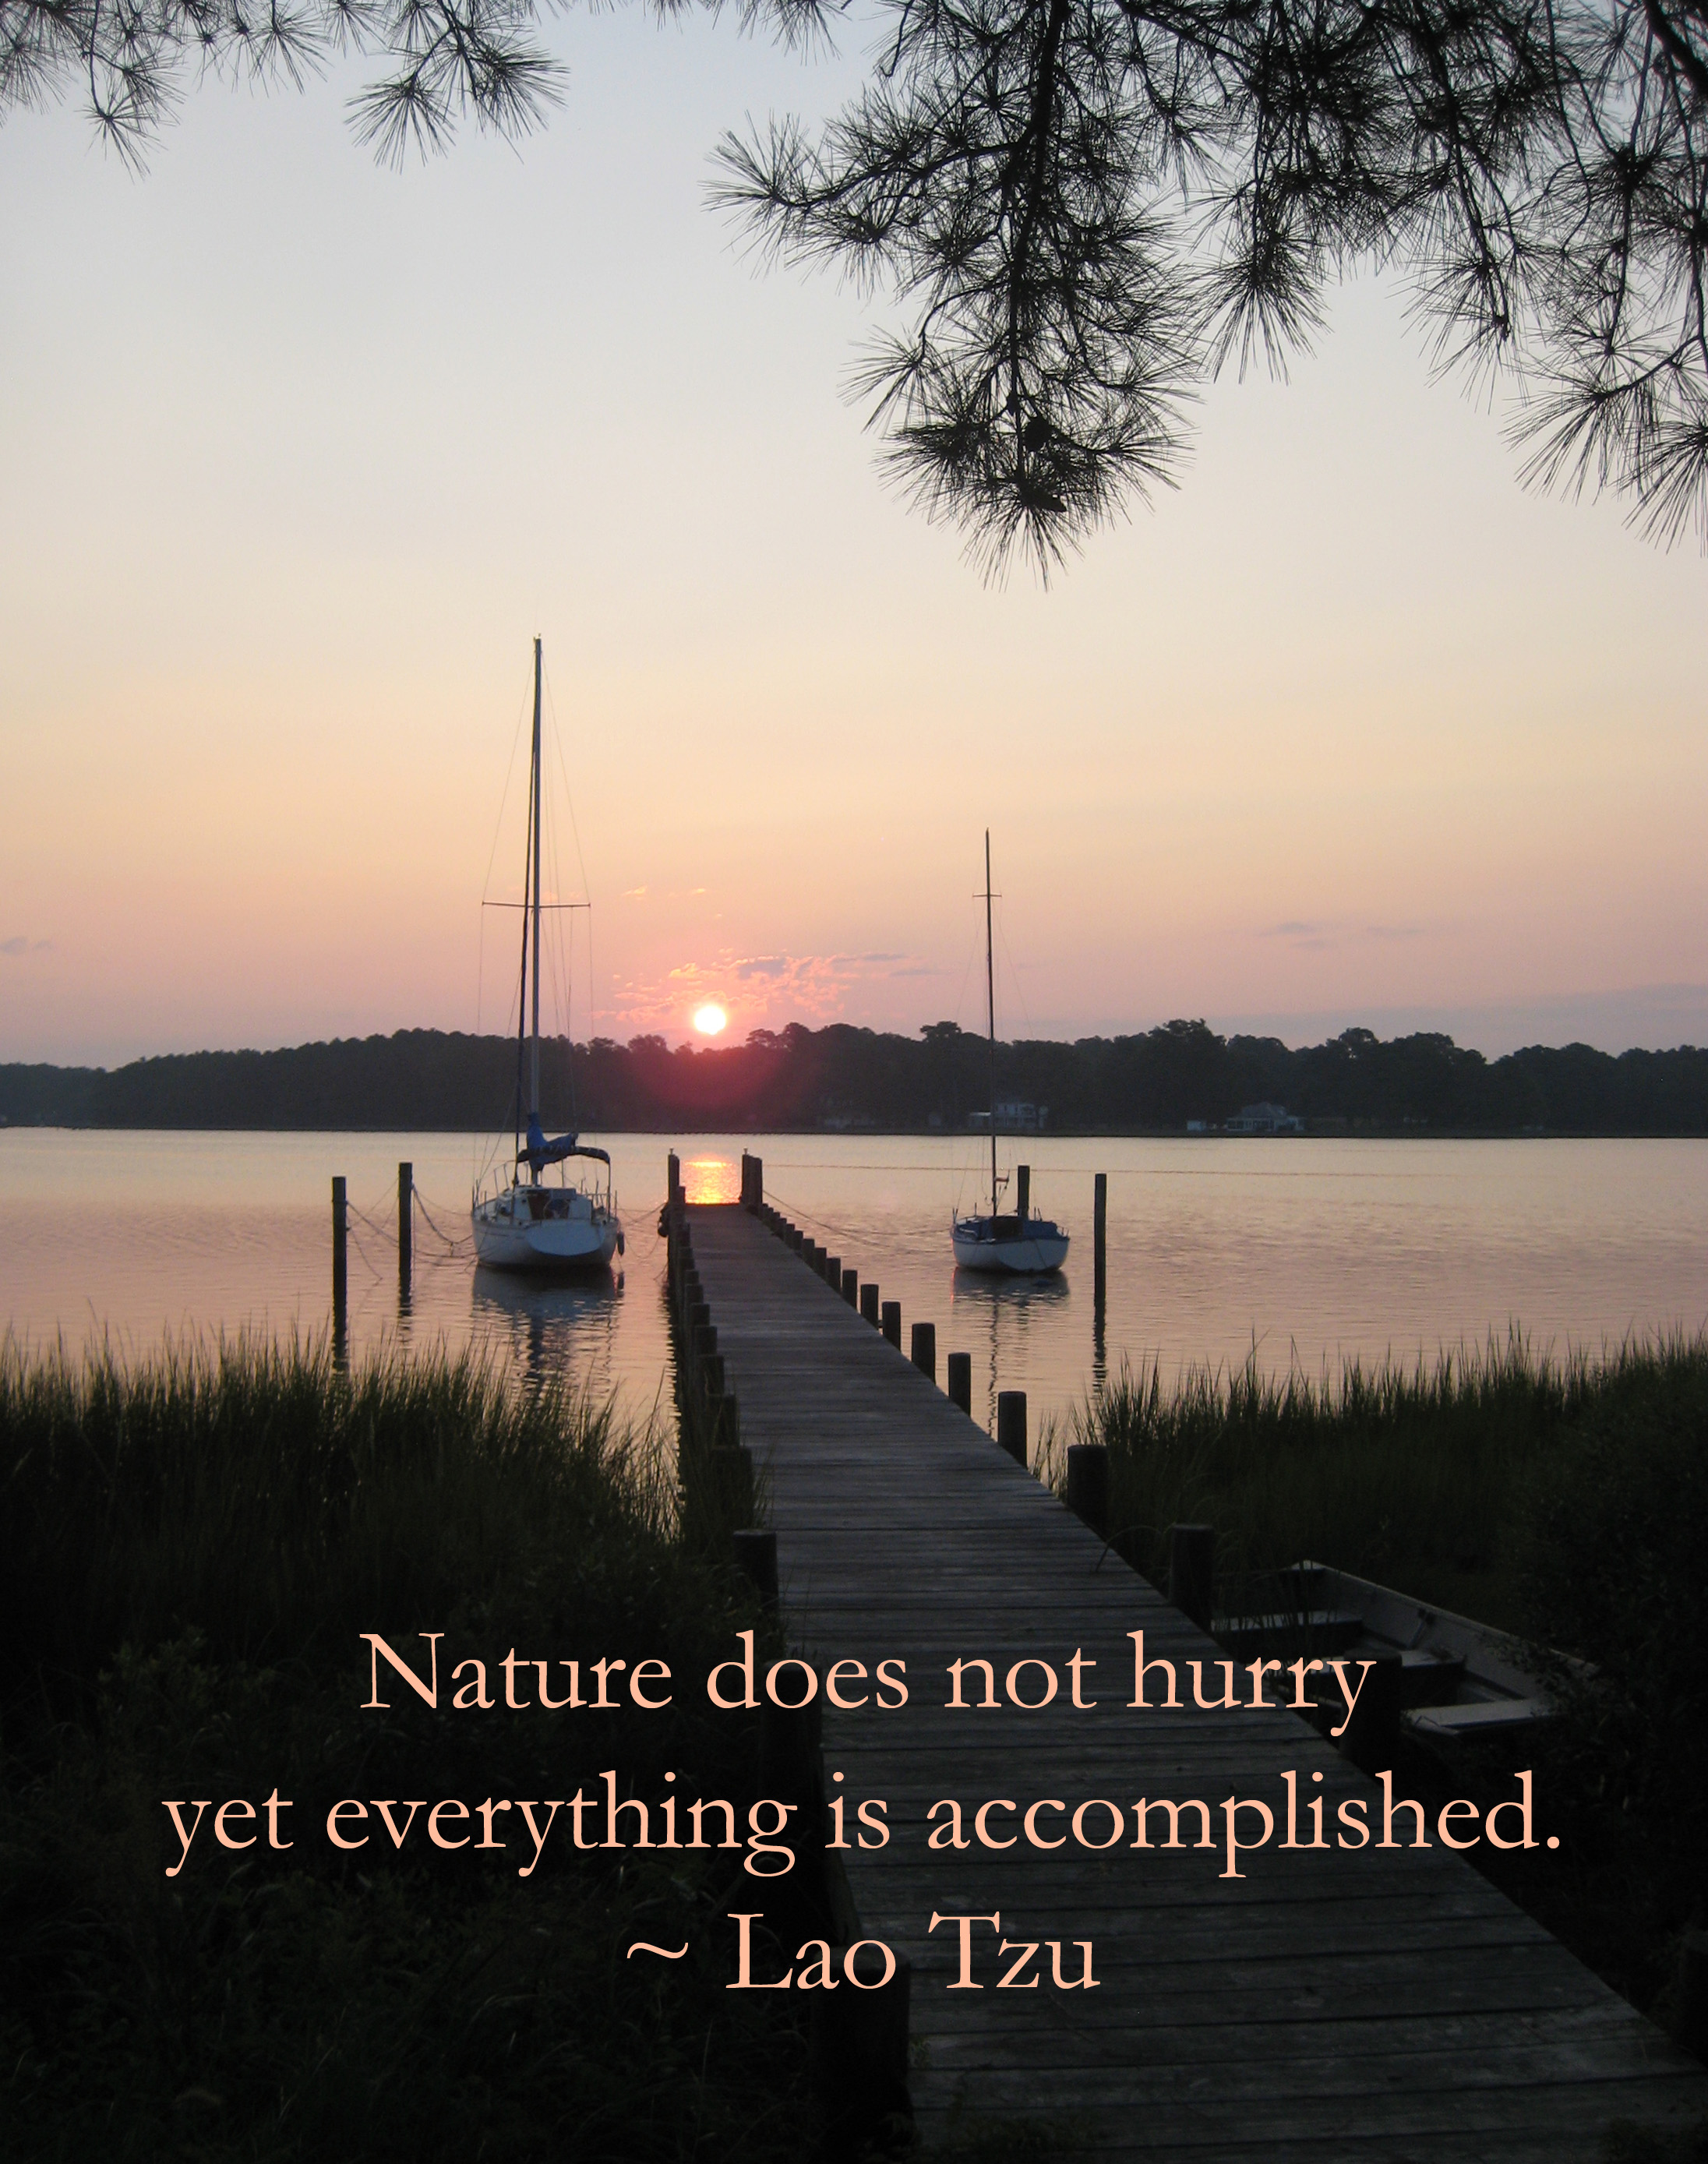 Quotes Nature Carol Chapman Inspirational Quote About Nature From Lao Tzu